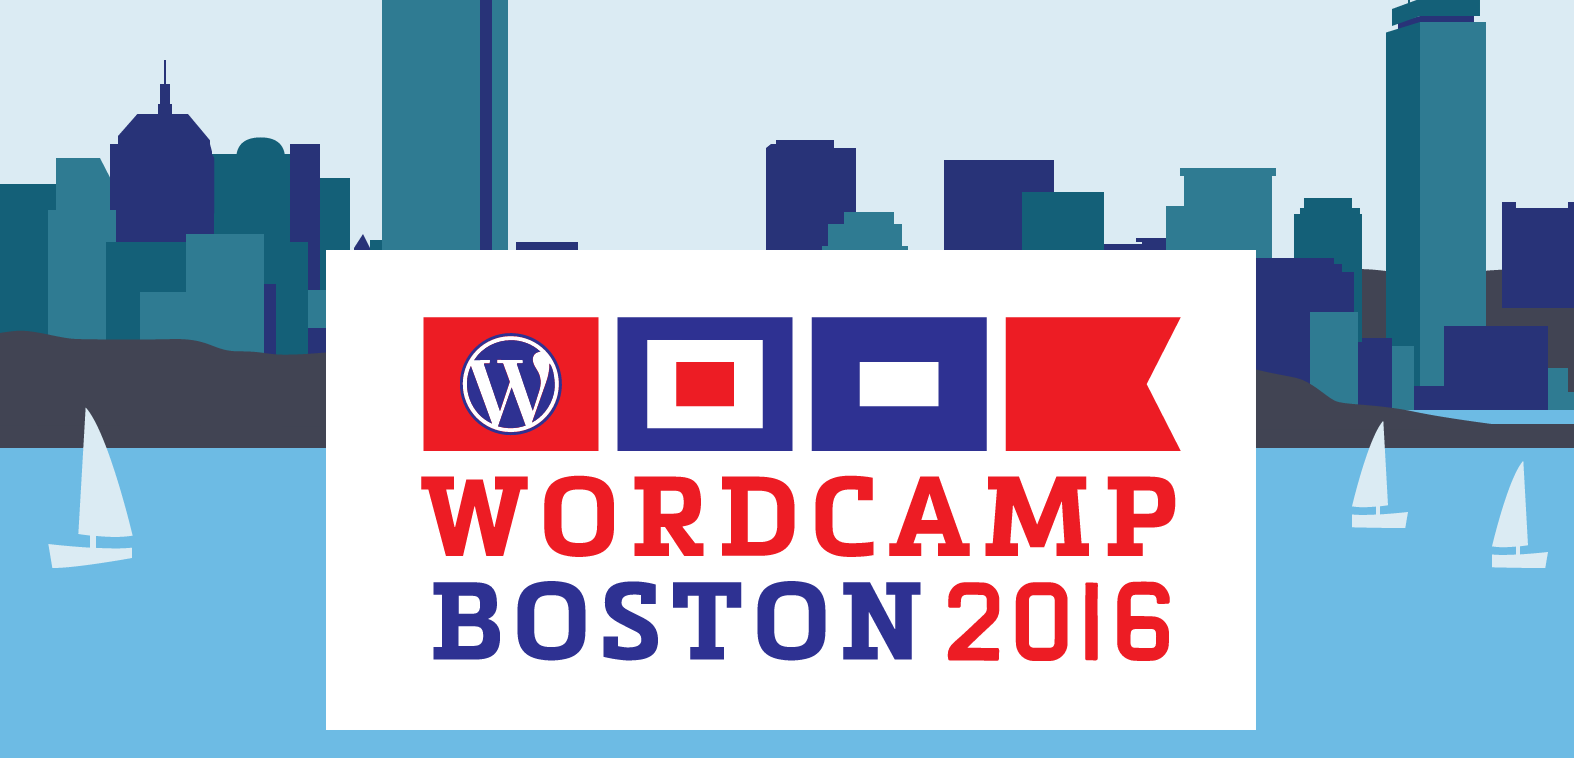 WordCamp Boston 2016